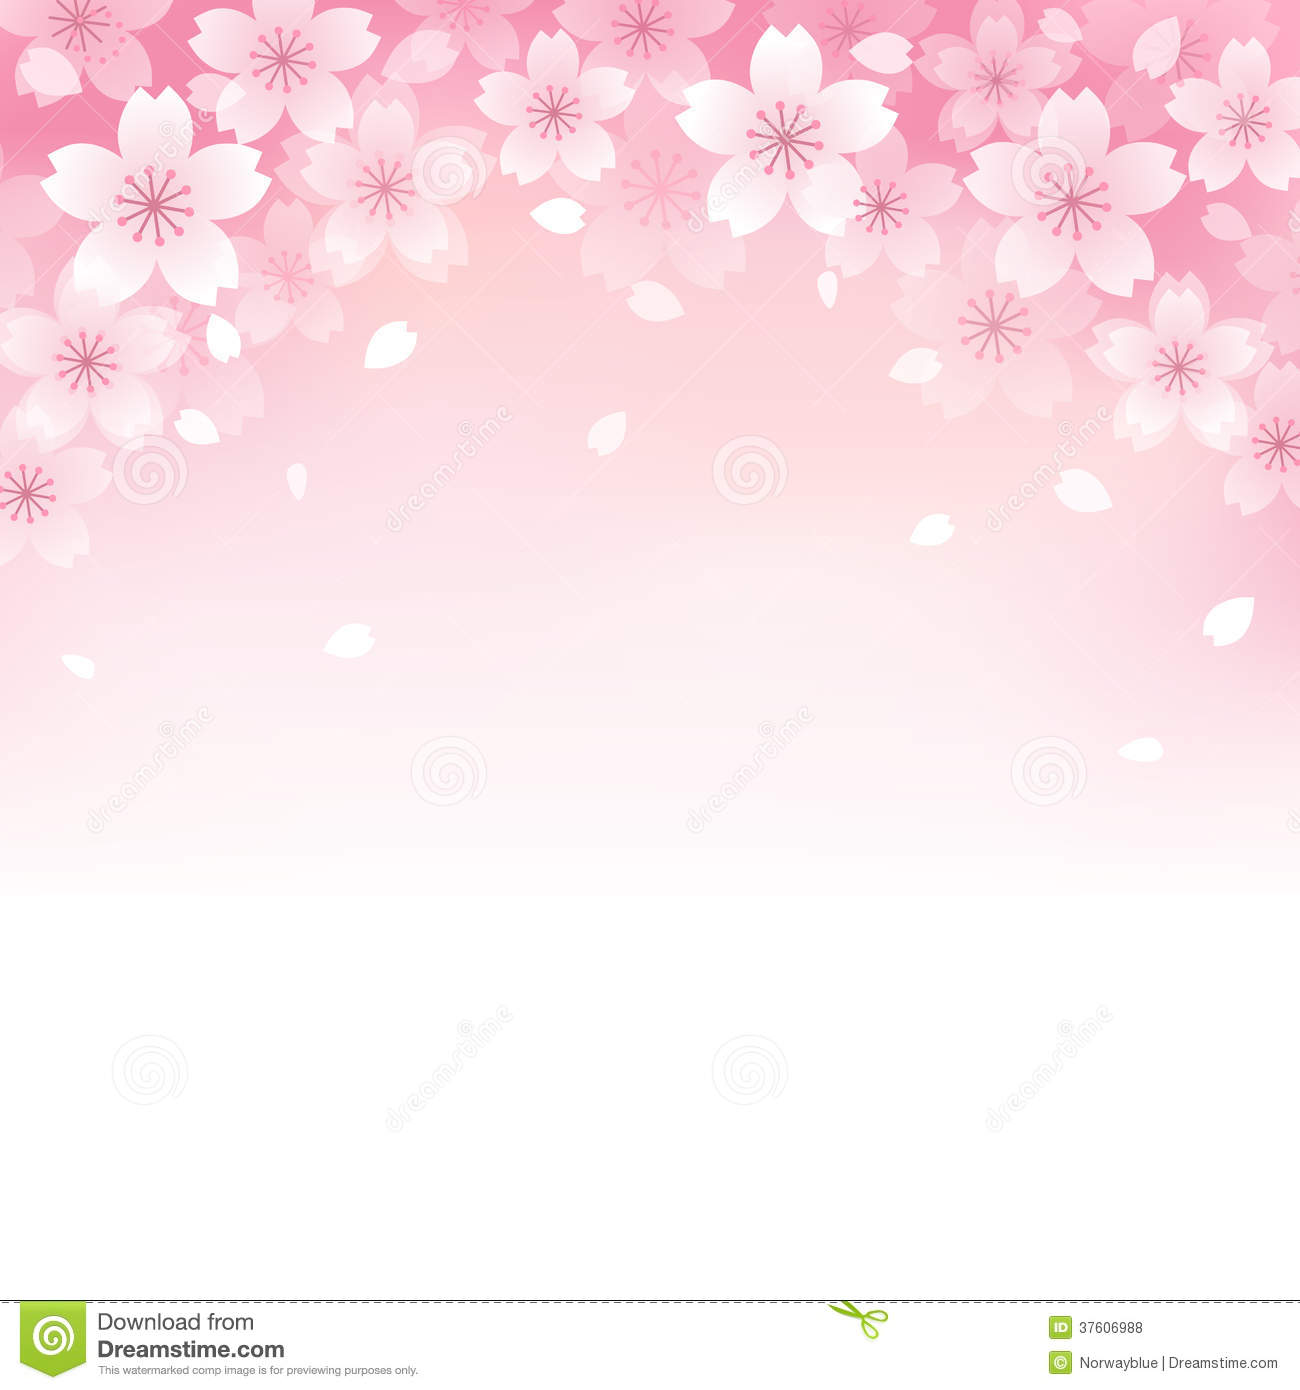 beautiful cherry blossom background 37606988